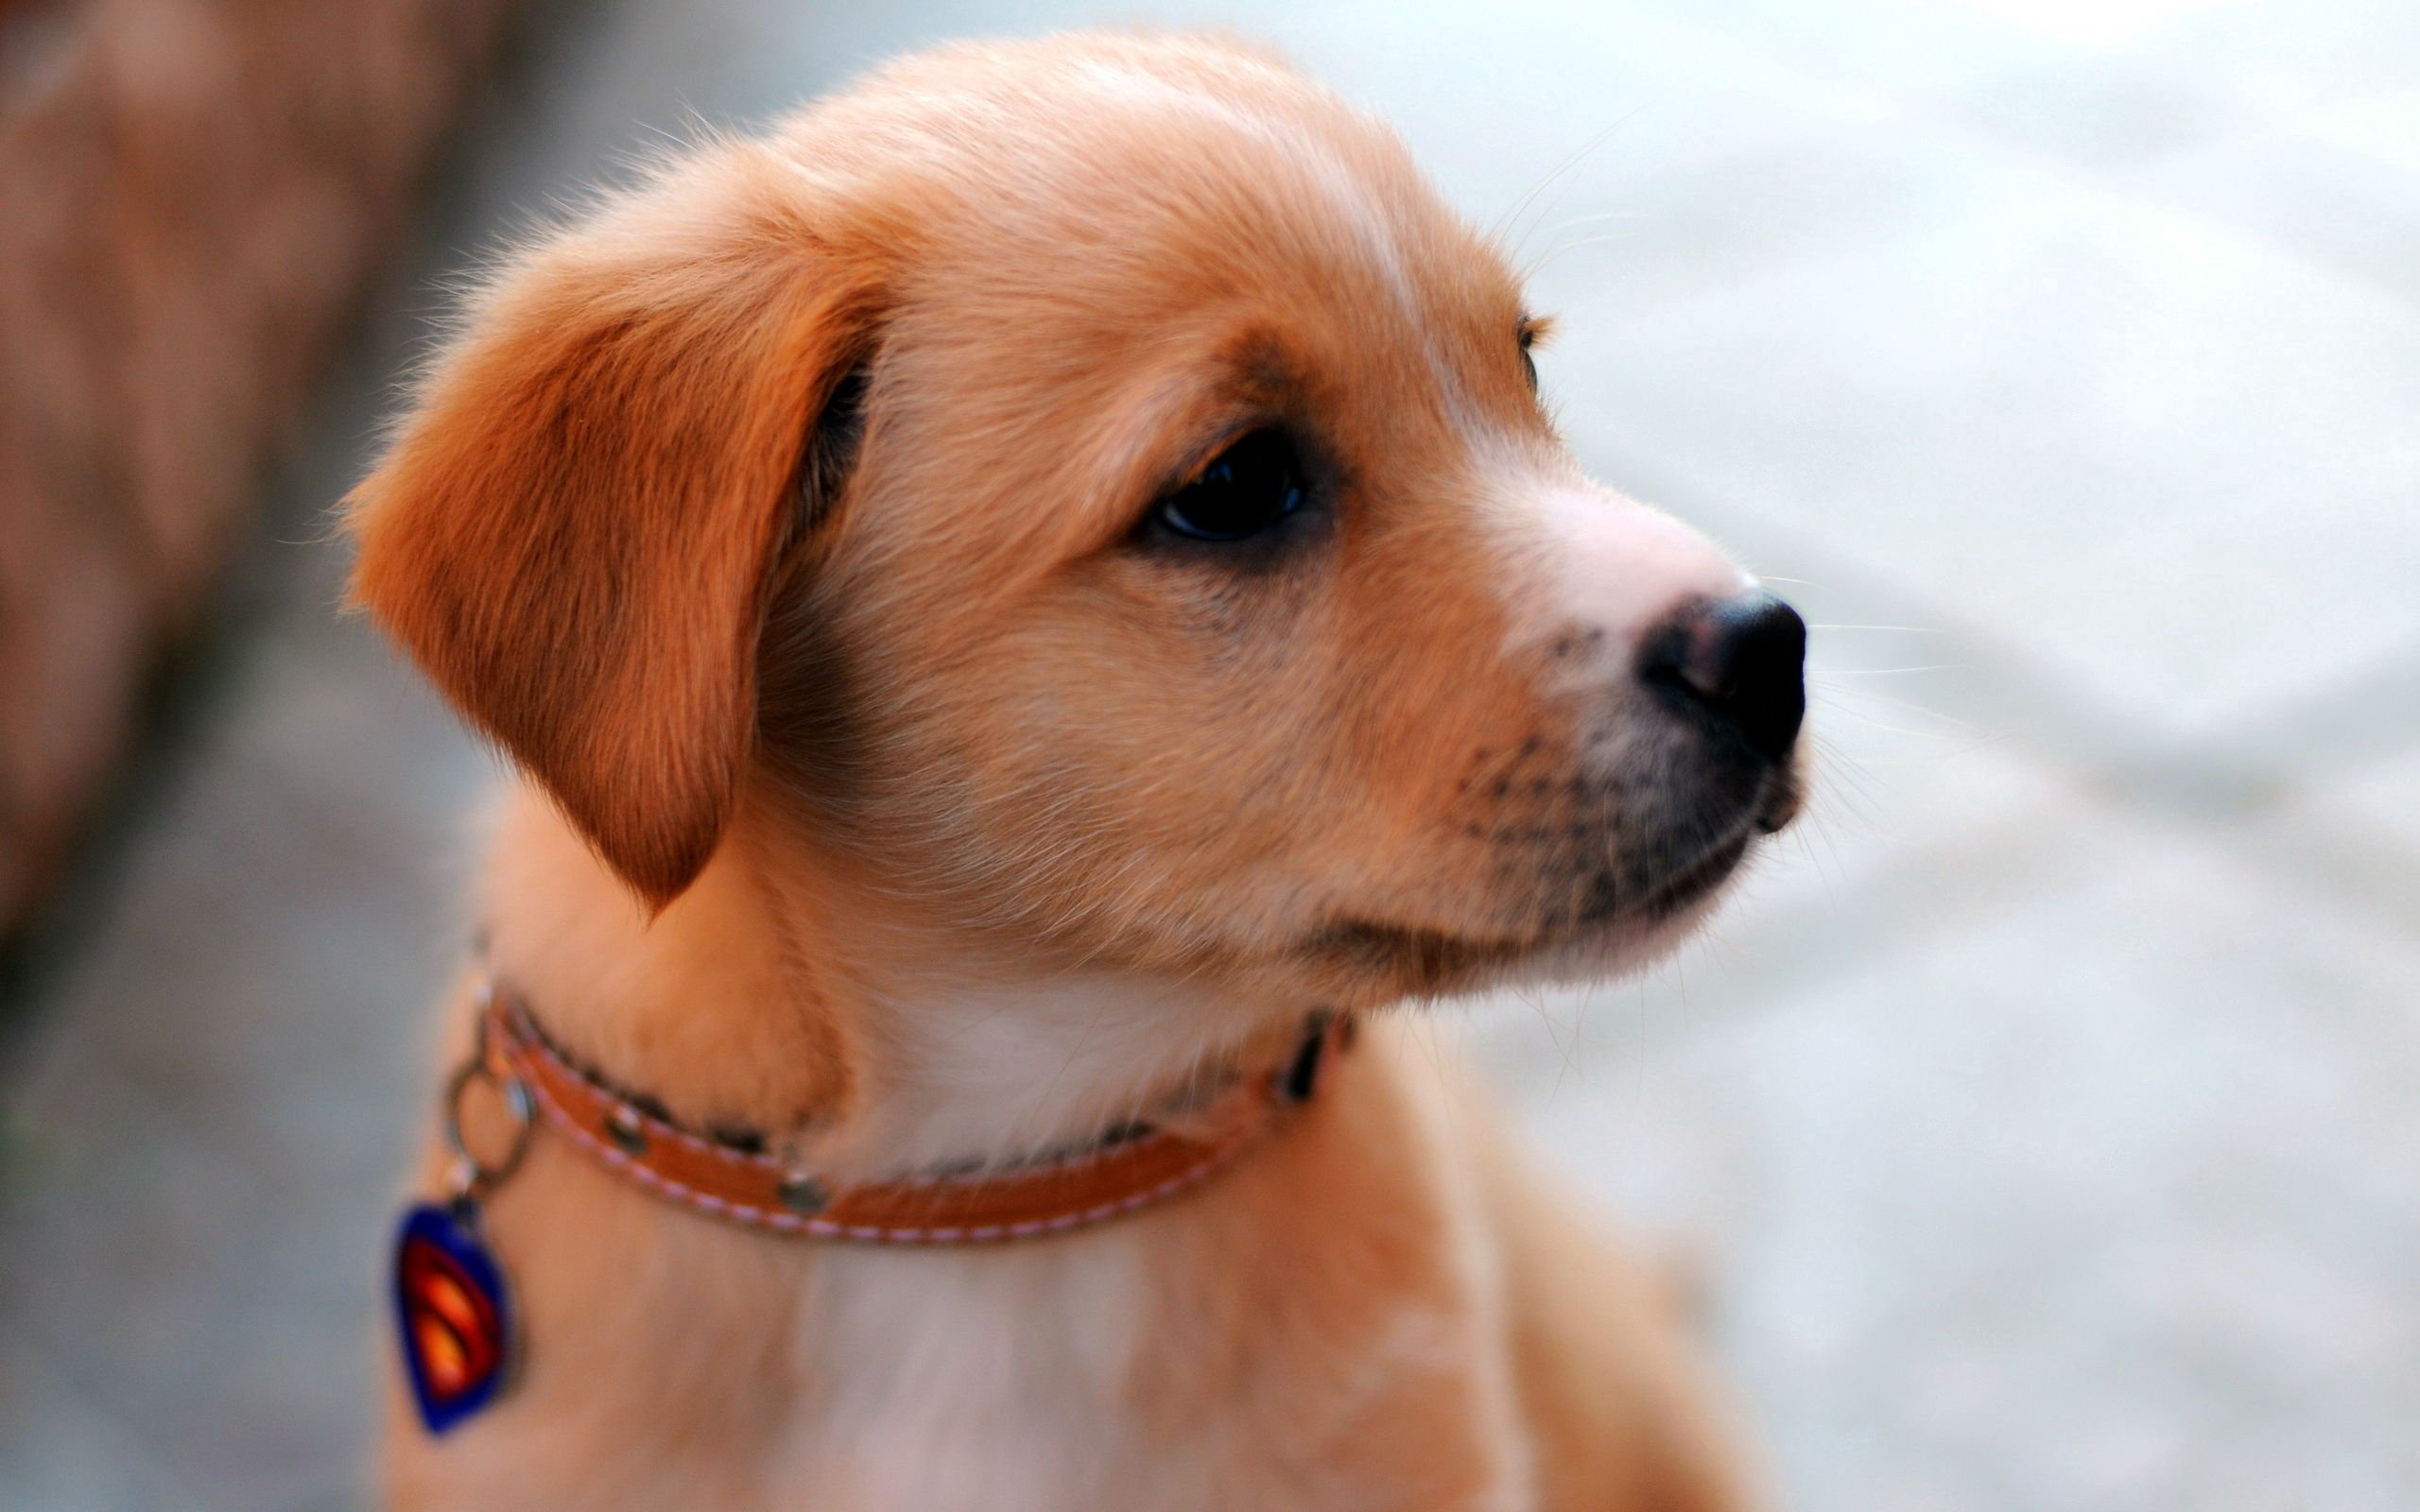 146684 download wallpaper Animals, Puppy, Muzzle, Collar, Nice, Sweetheart, Look Around, Look Back screensavers and pictures for free